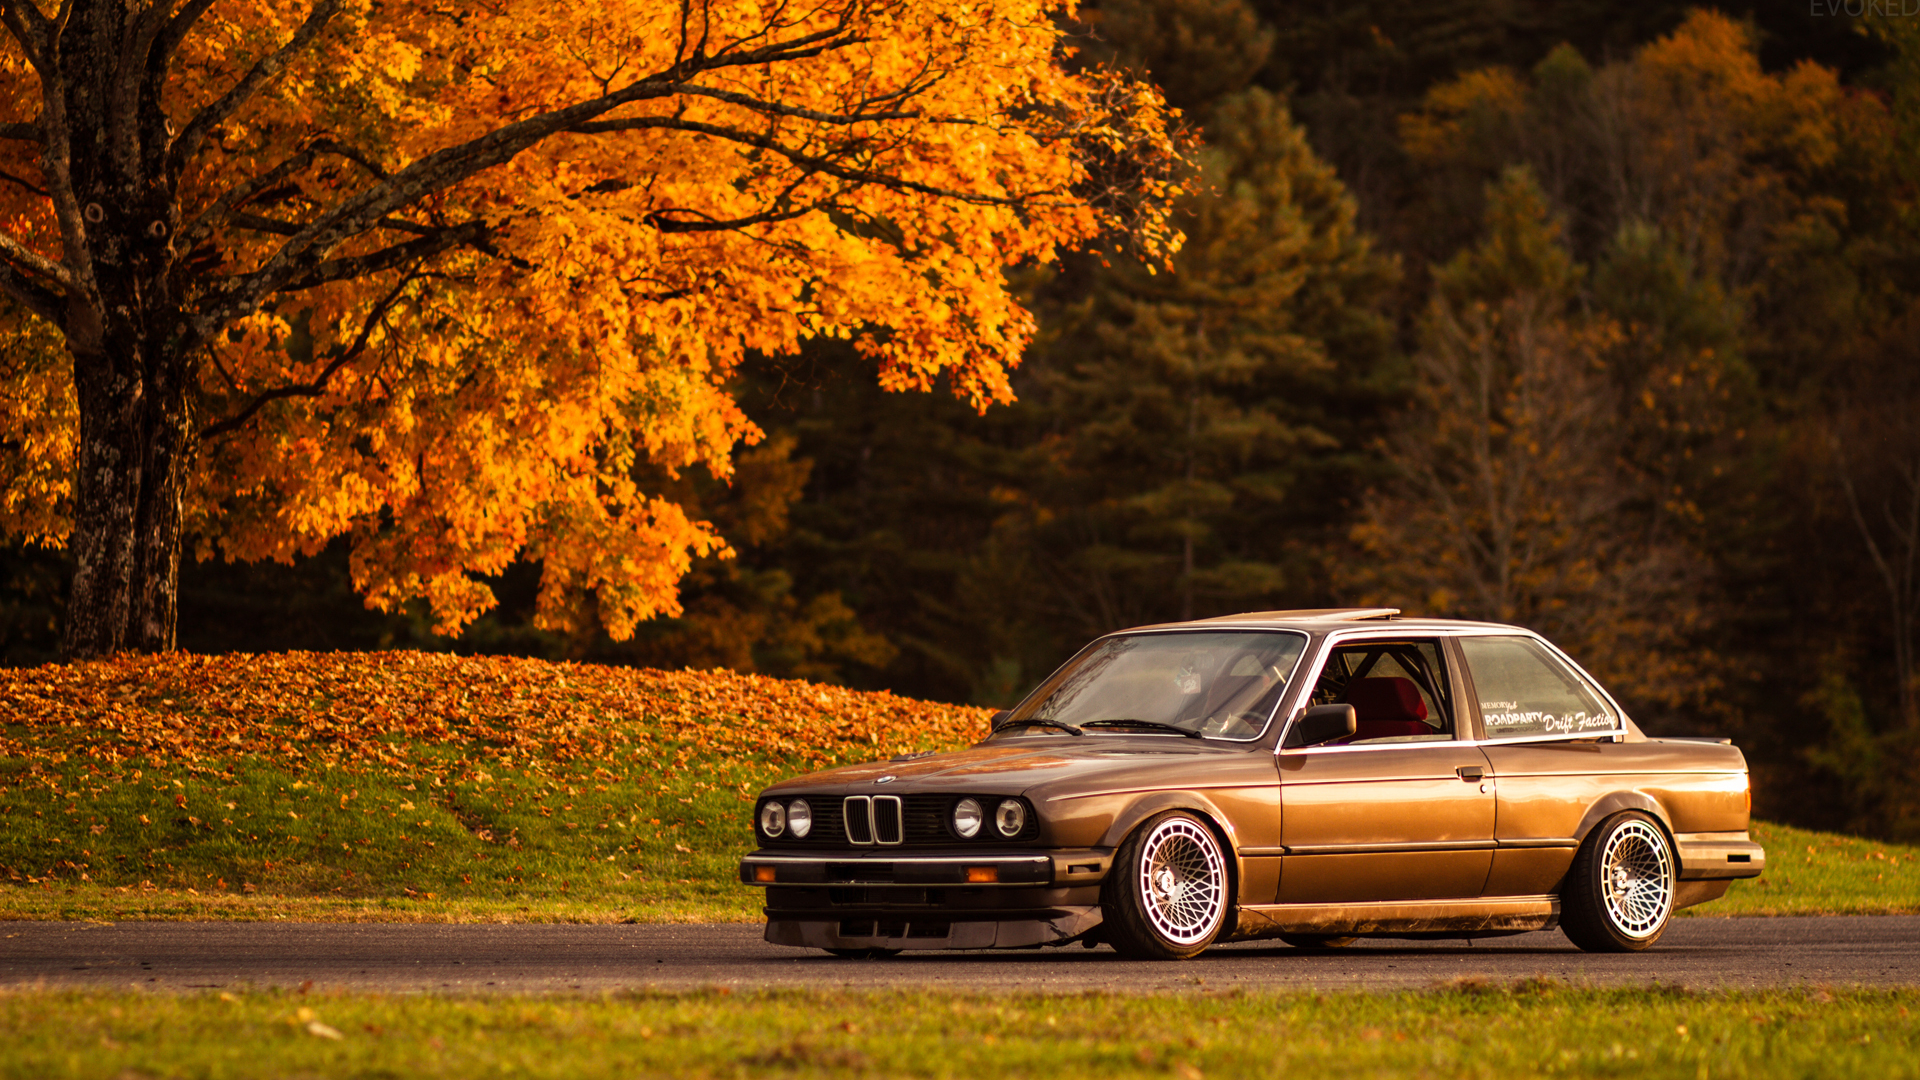 Free Download Bmw E30 Wallpapers Hd 1920x1280 For Your